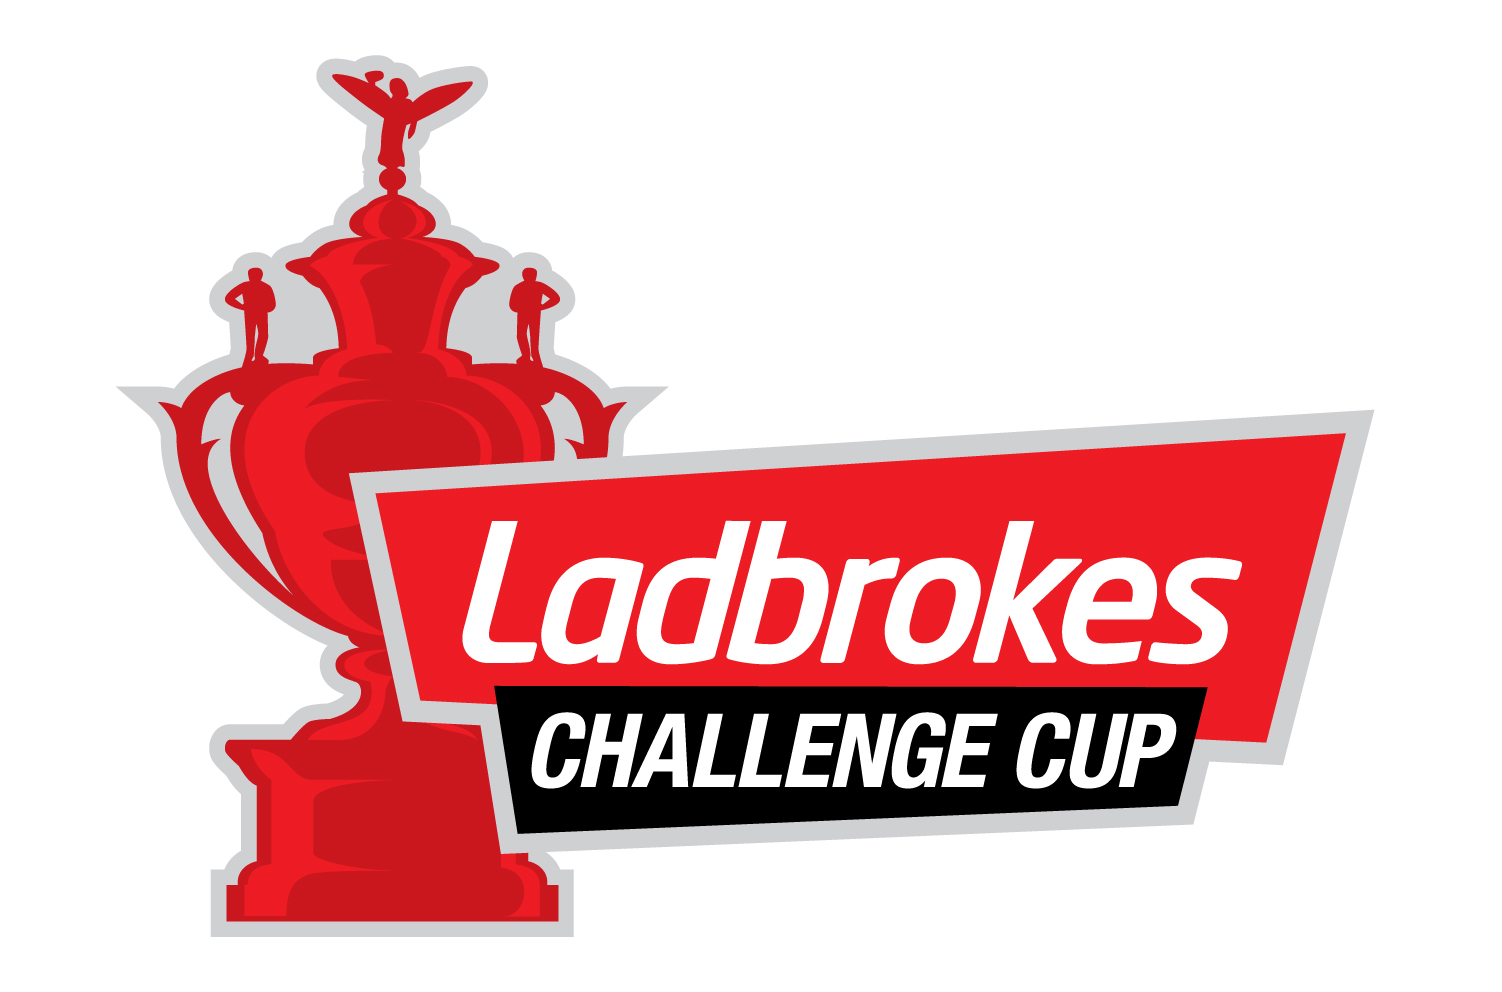 Ladbrokes named new sponsor of Rugby League Challenge Cup.